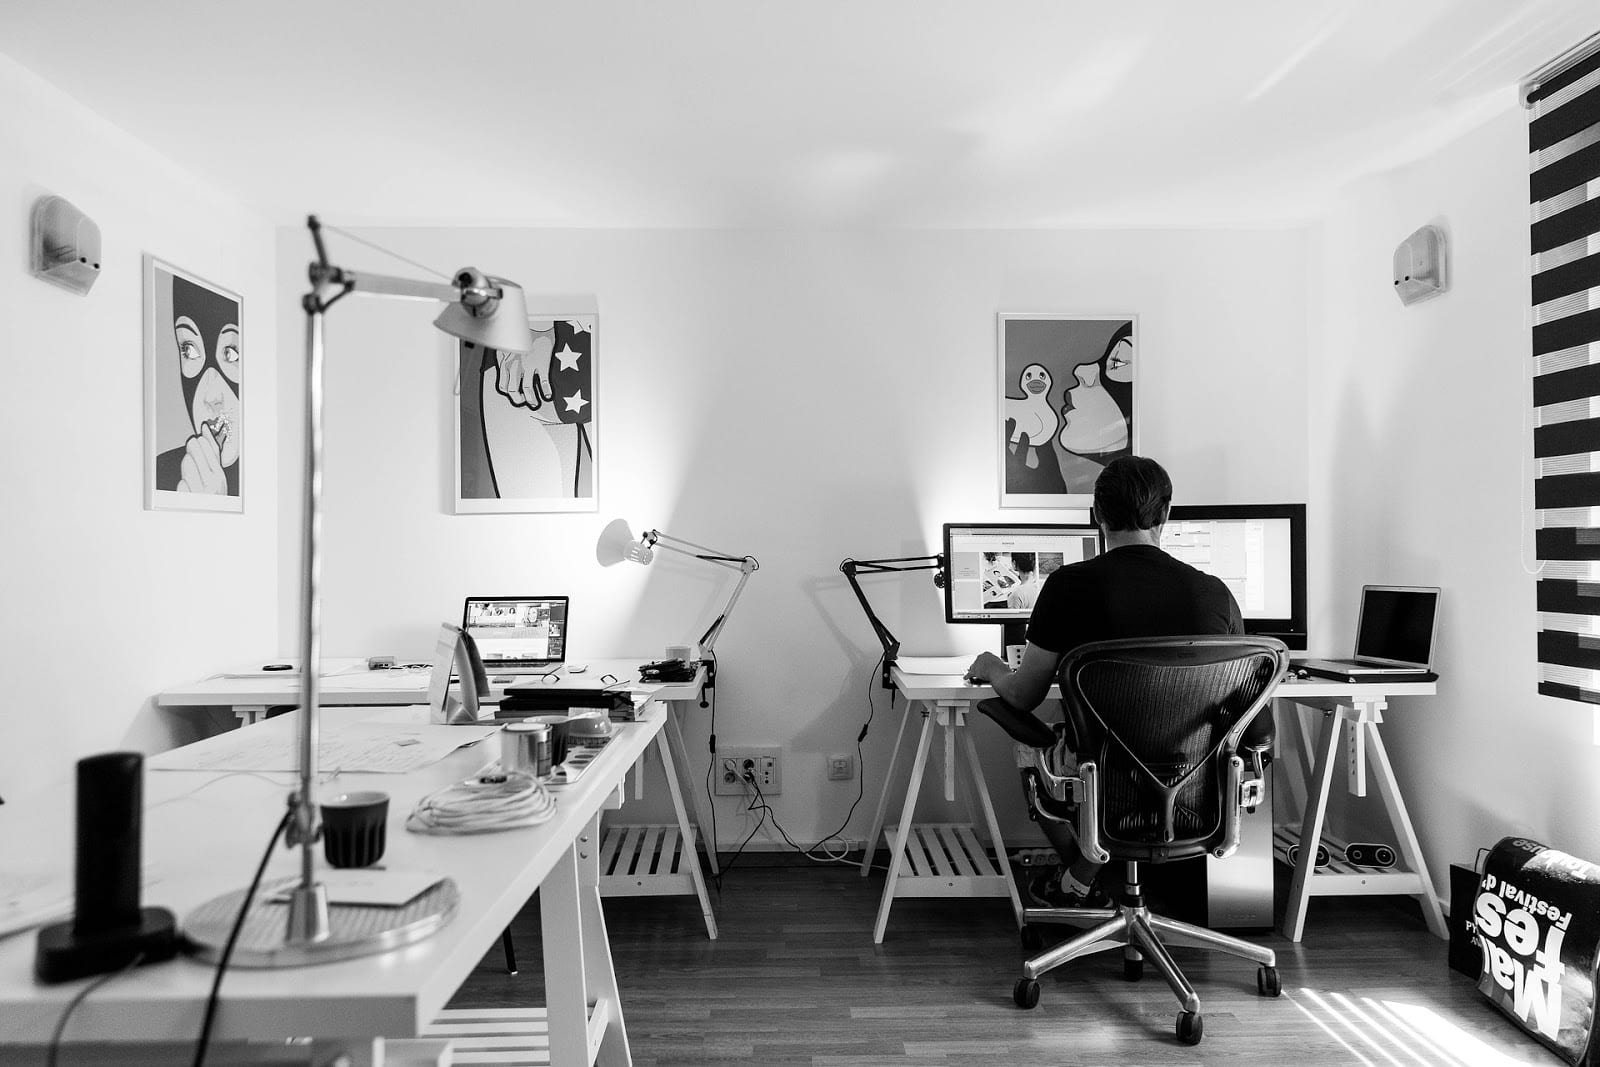 StrategyDriven Starting Your Business Article | 5 Ways to Convert Your Garage Into a Home Office